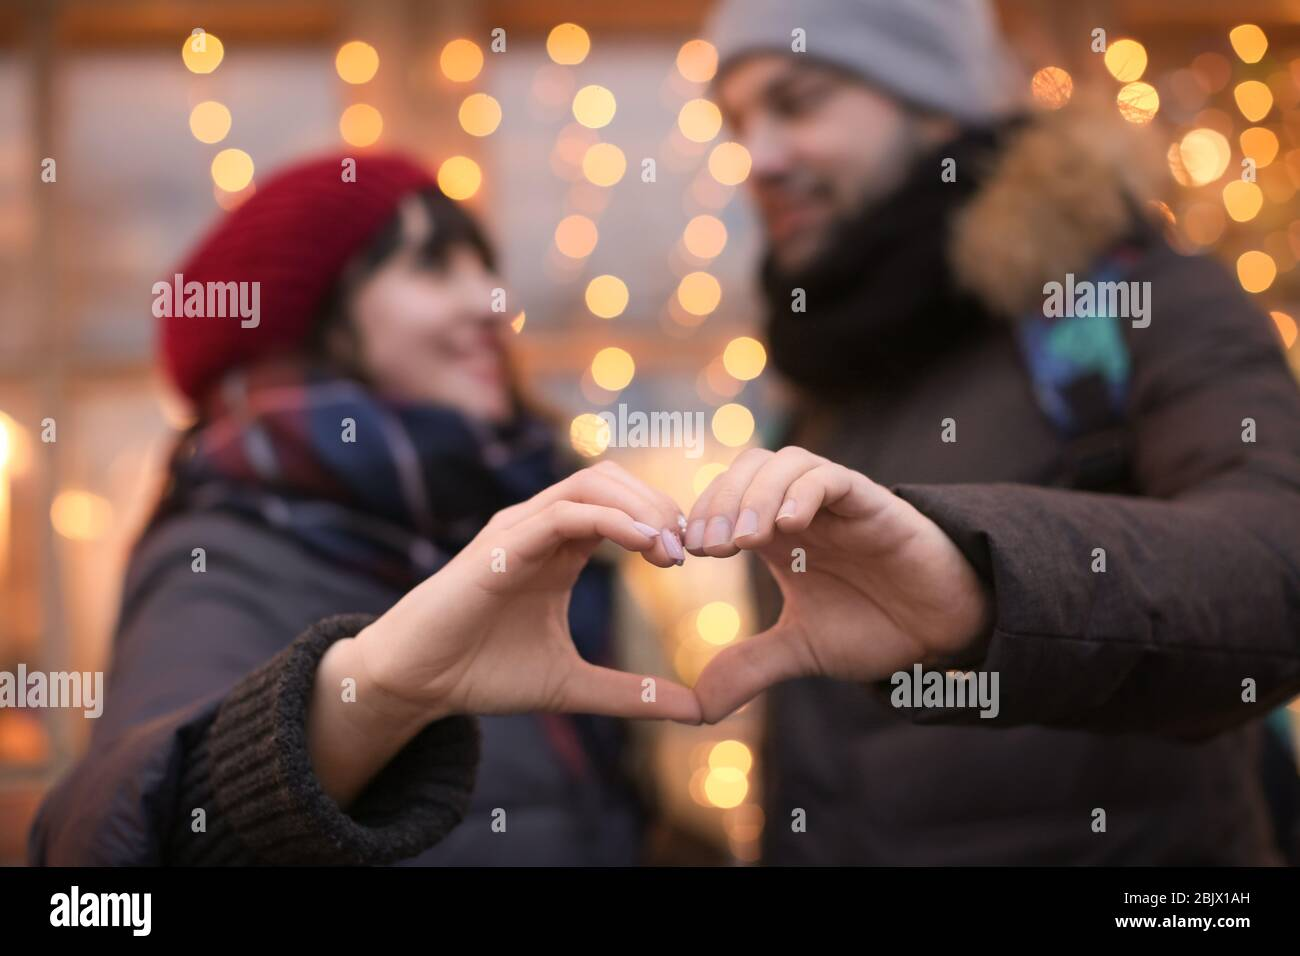 Young Loving Couple Making Heart With Hands Outdoors On Winter Day